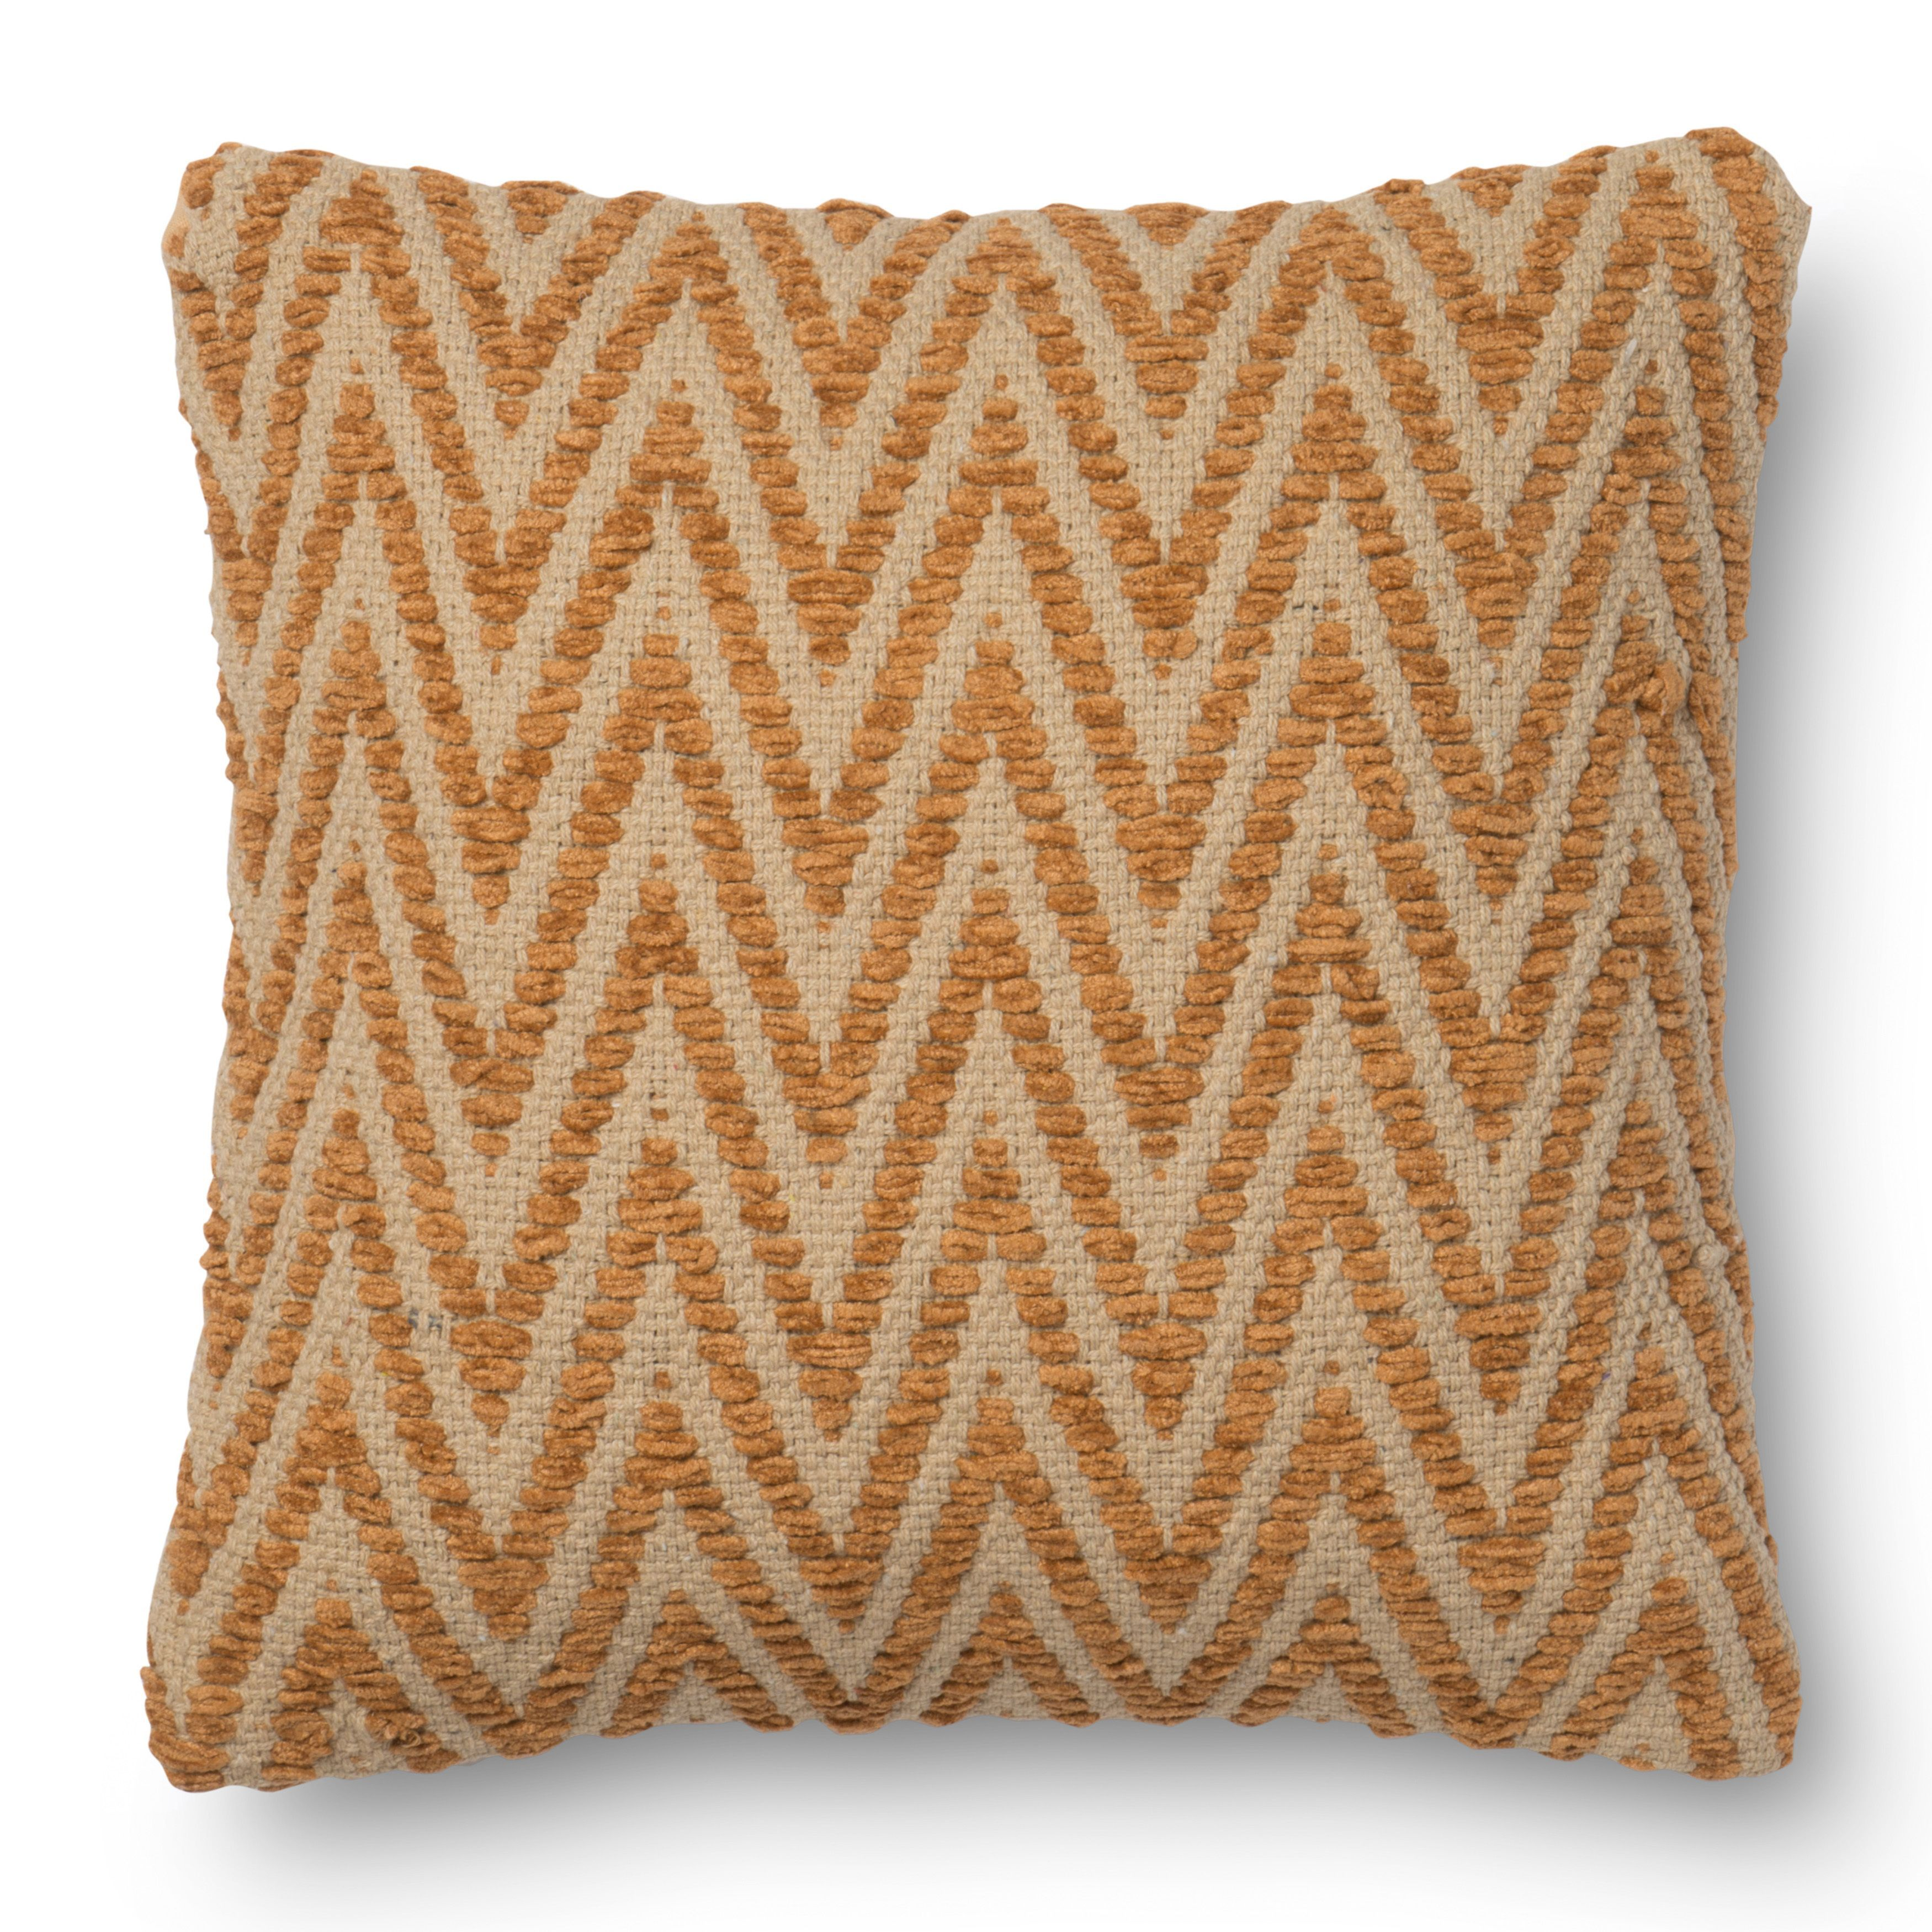 Alexander Home Woven Feather and Down Filled or Polyester Filled 18-inch Throw Pillow or Pillow Cover